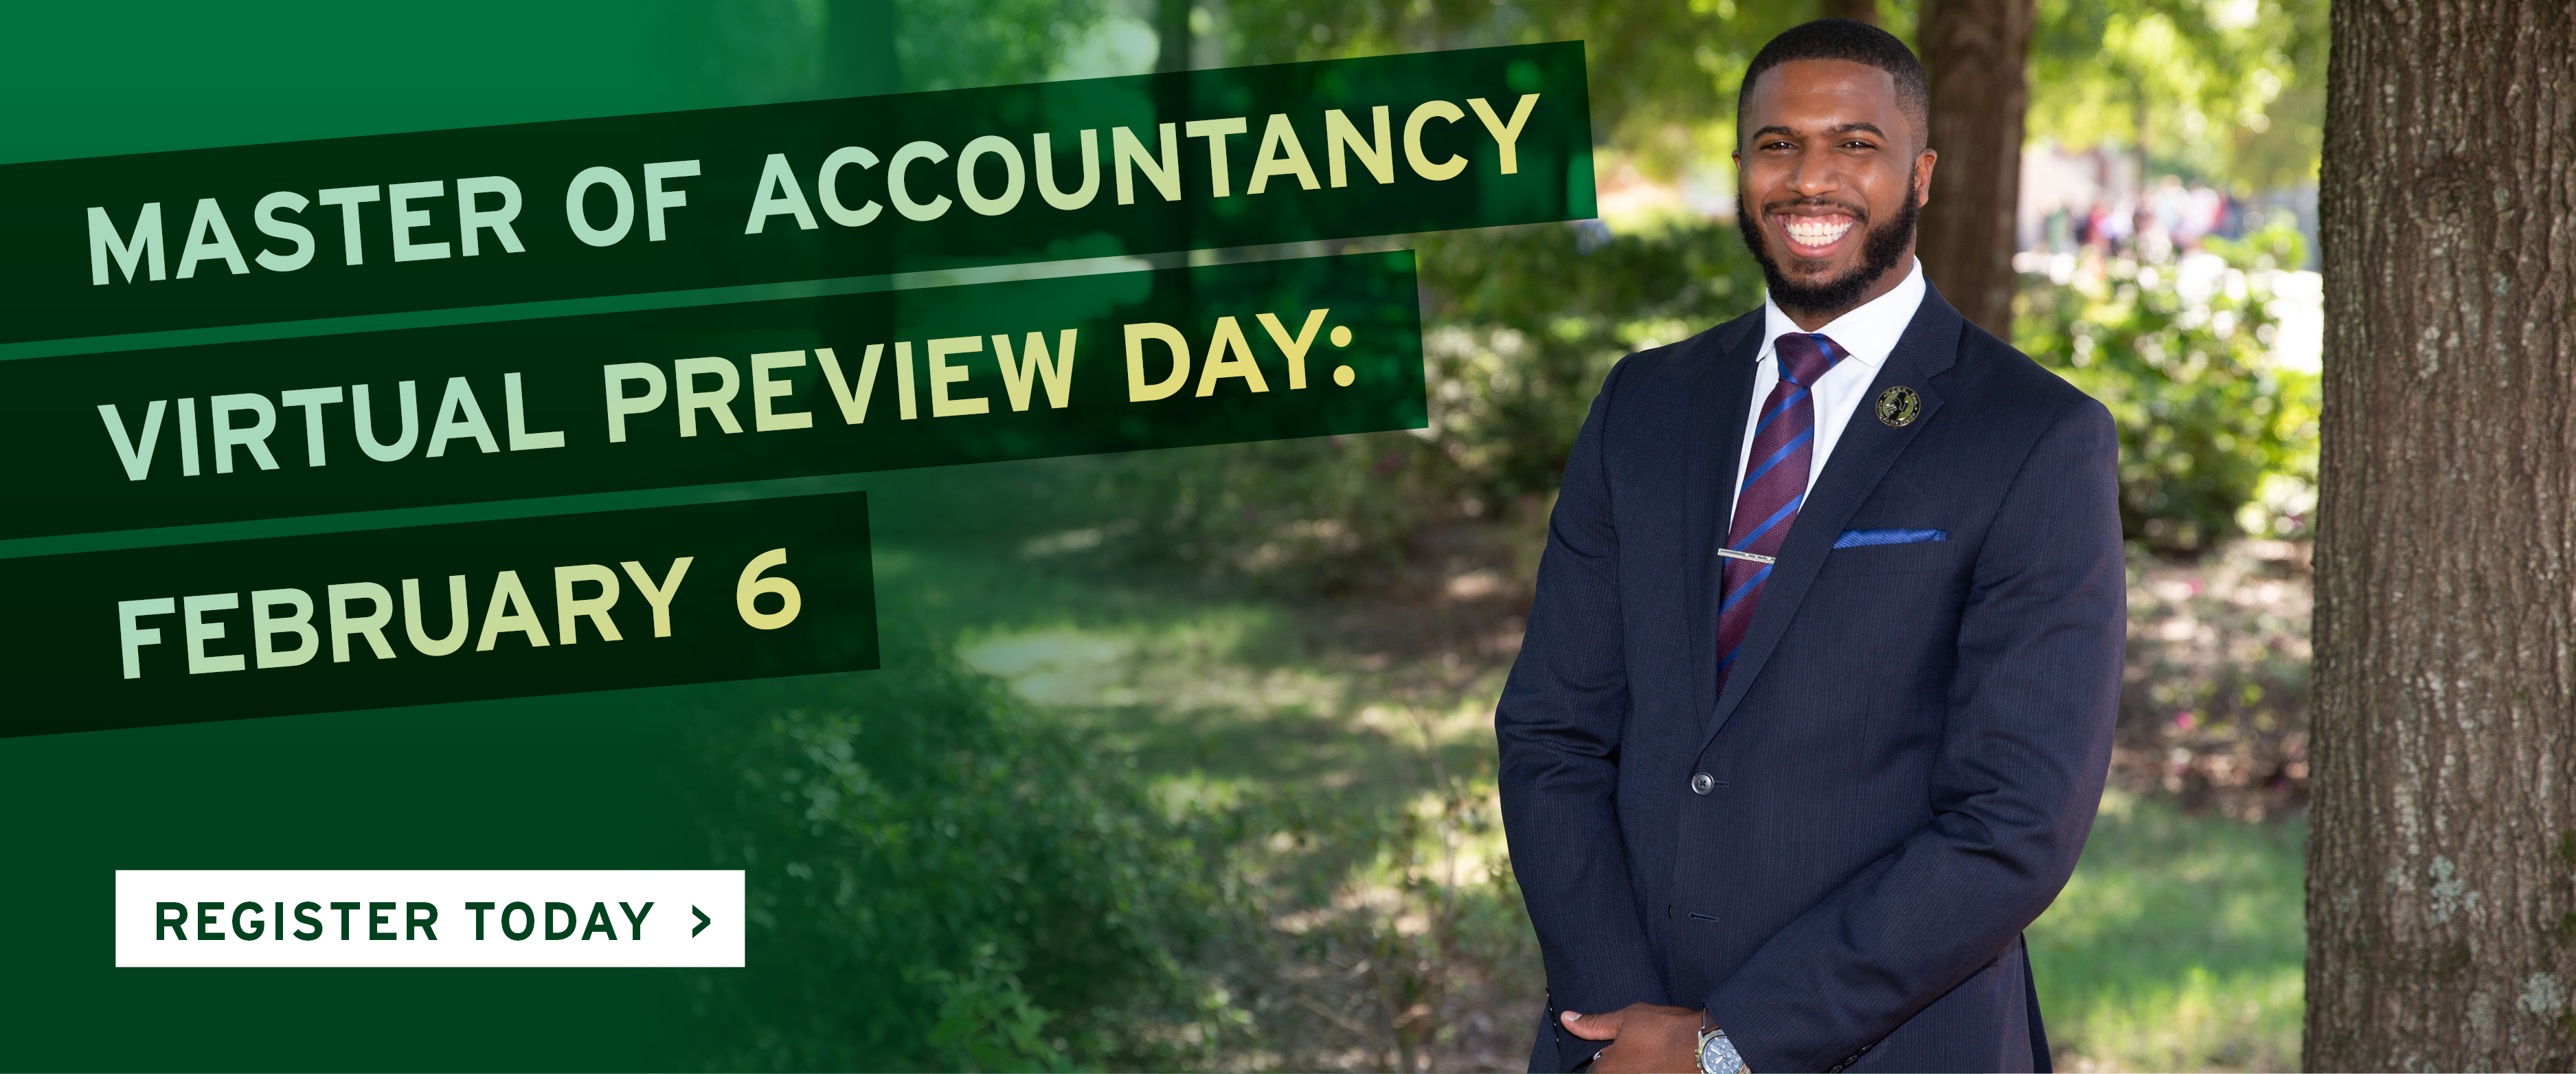 Master of Accountancy Virtual Preview Day